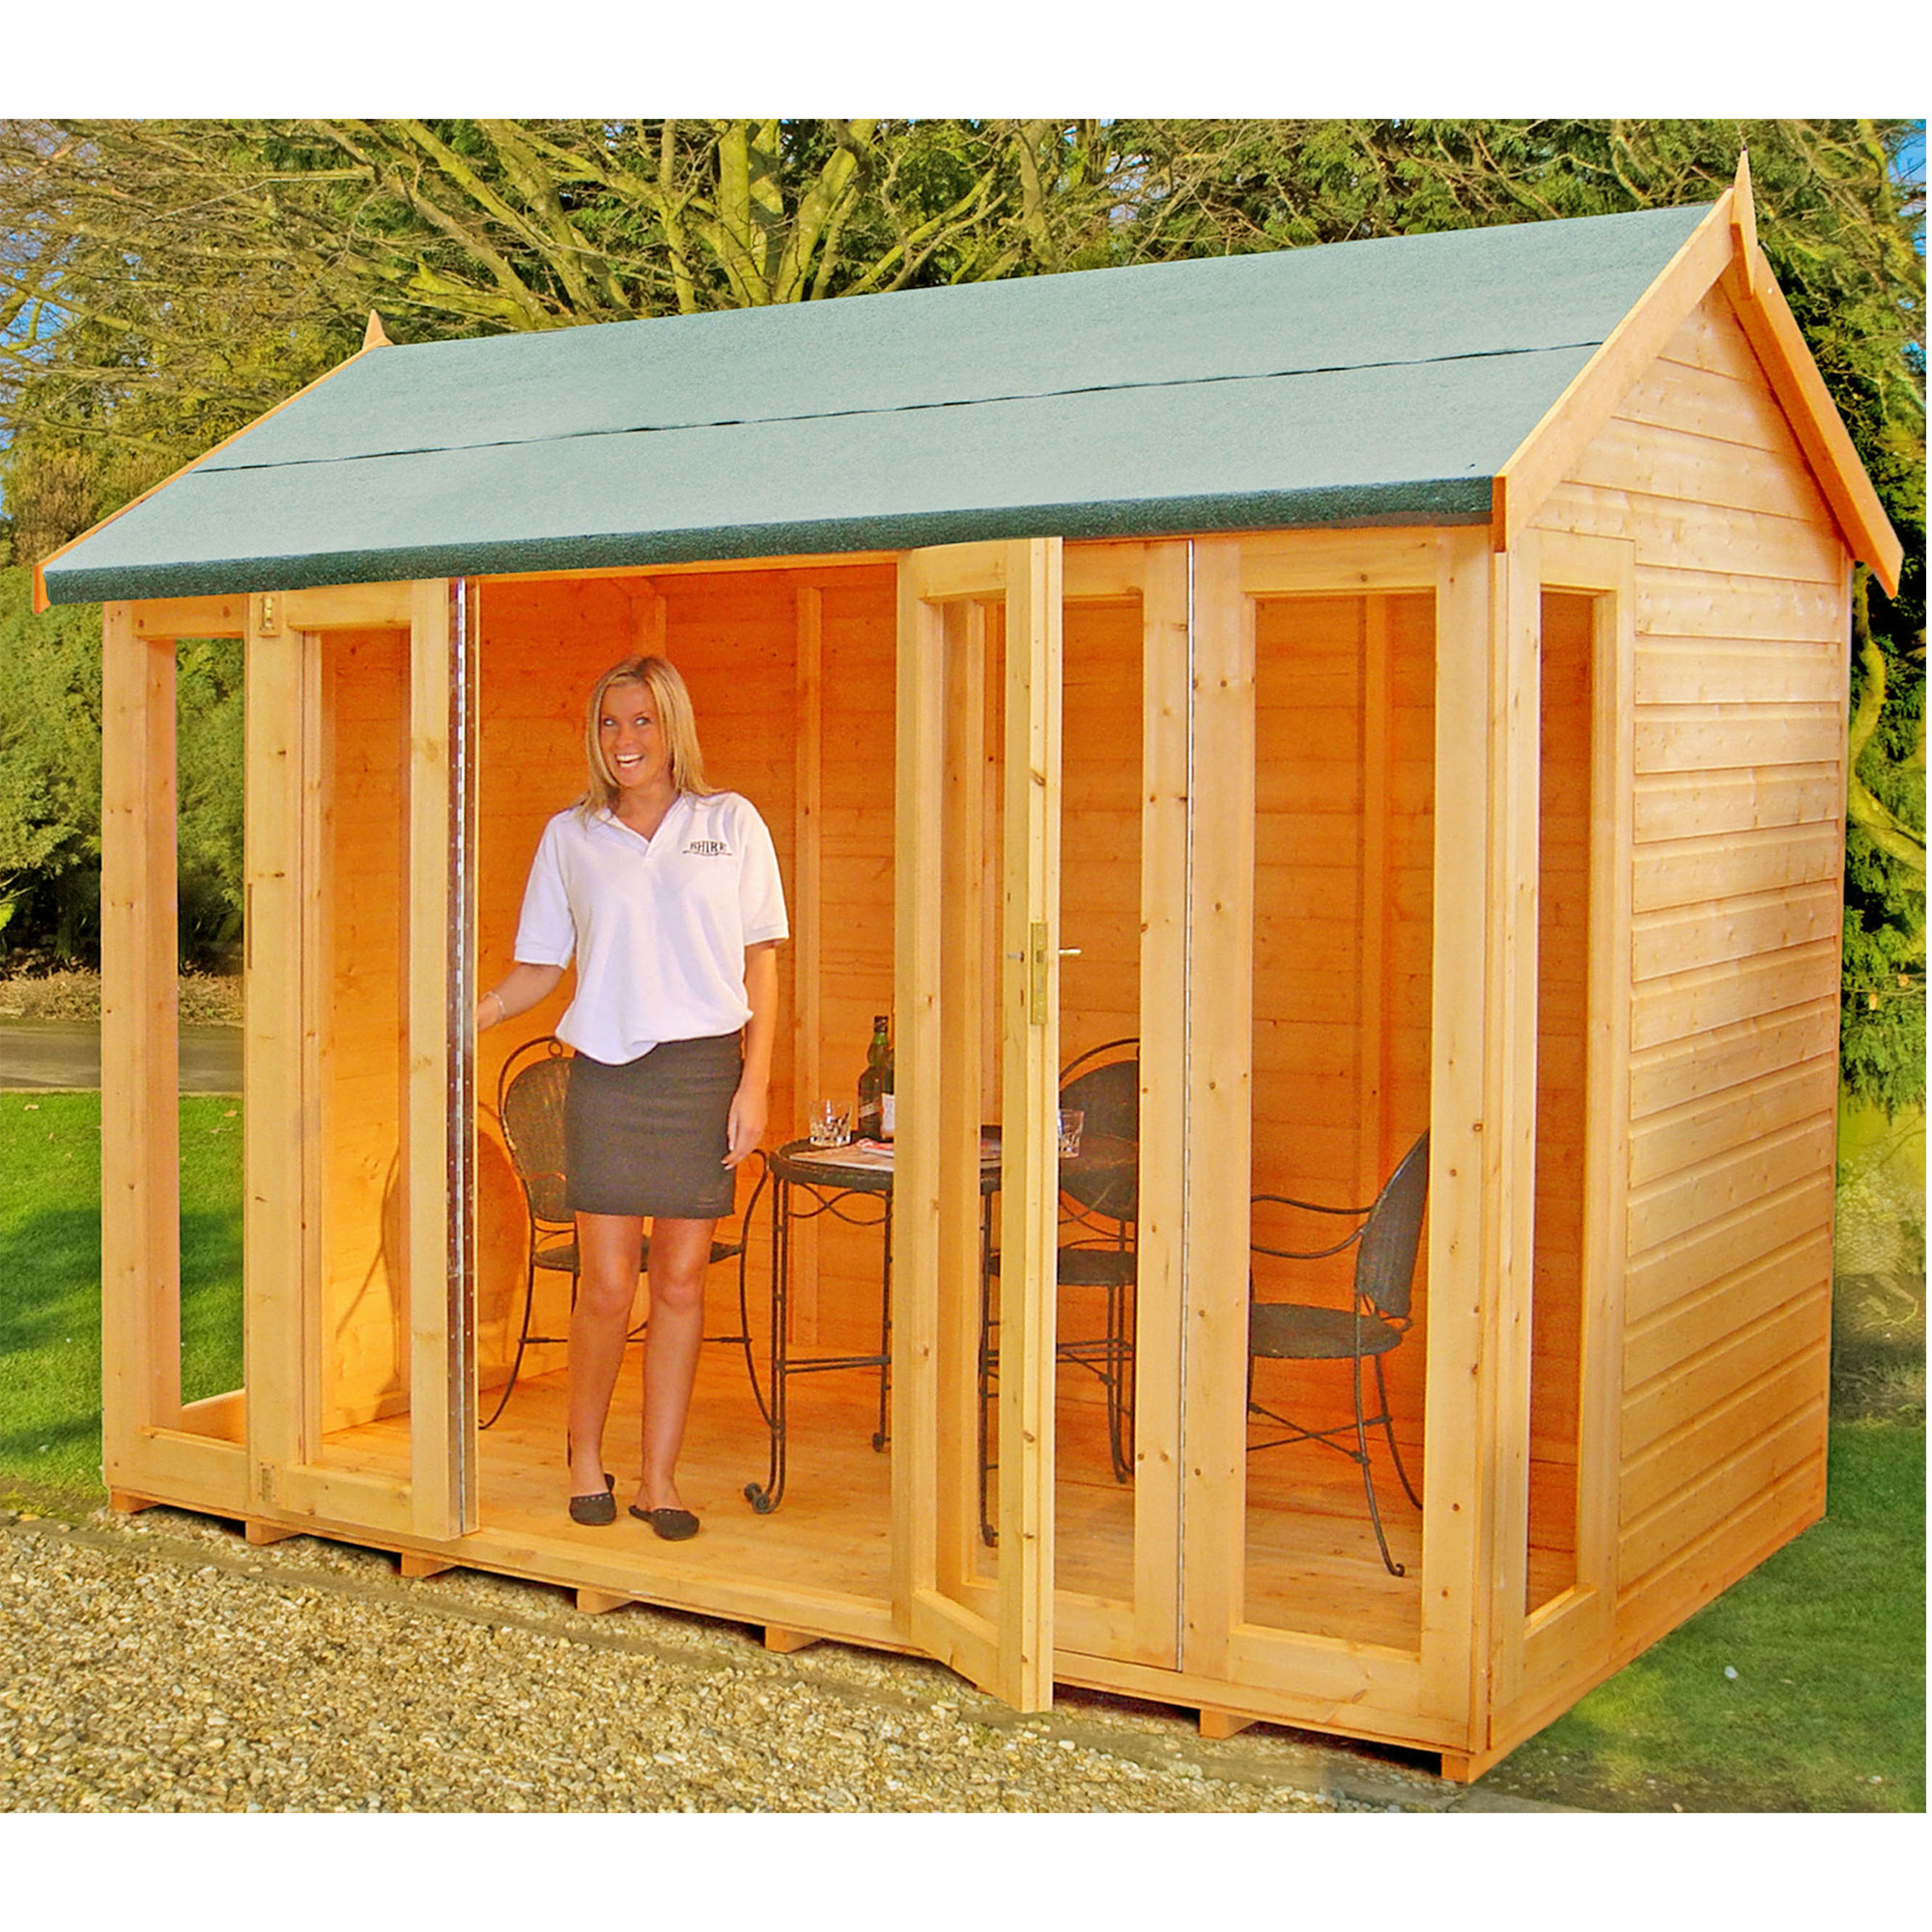 Image of 10'3 x 6'5 Shire Blenheim Wooden Summerhouse